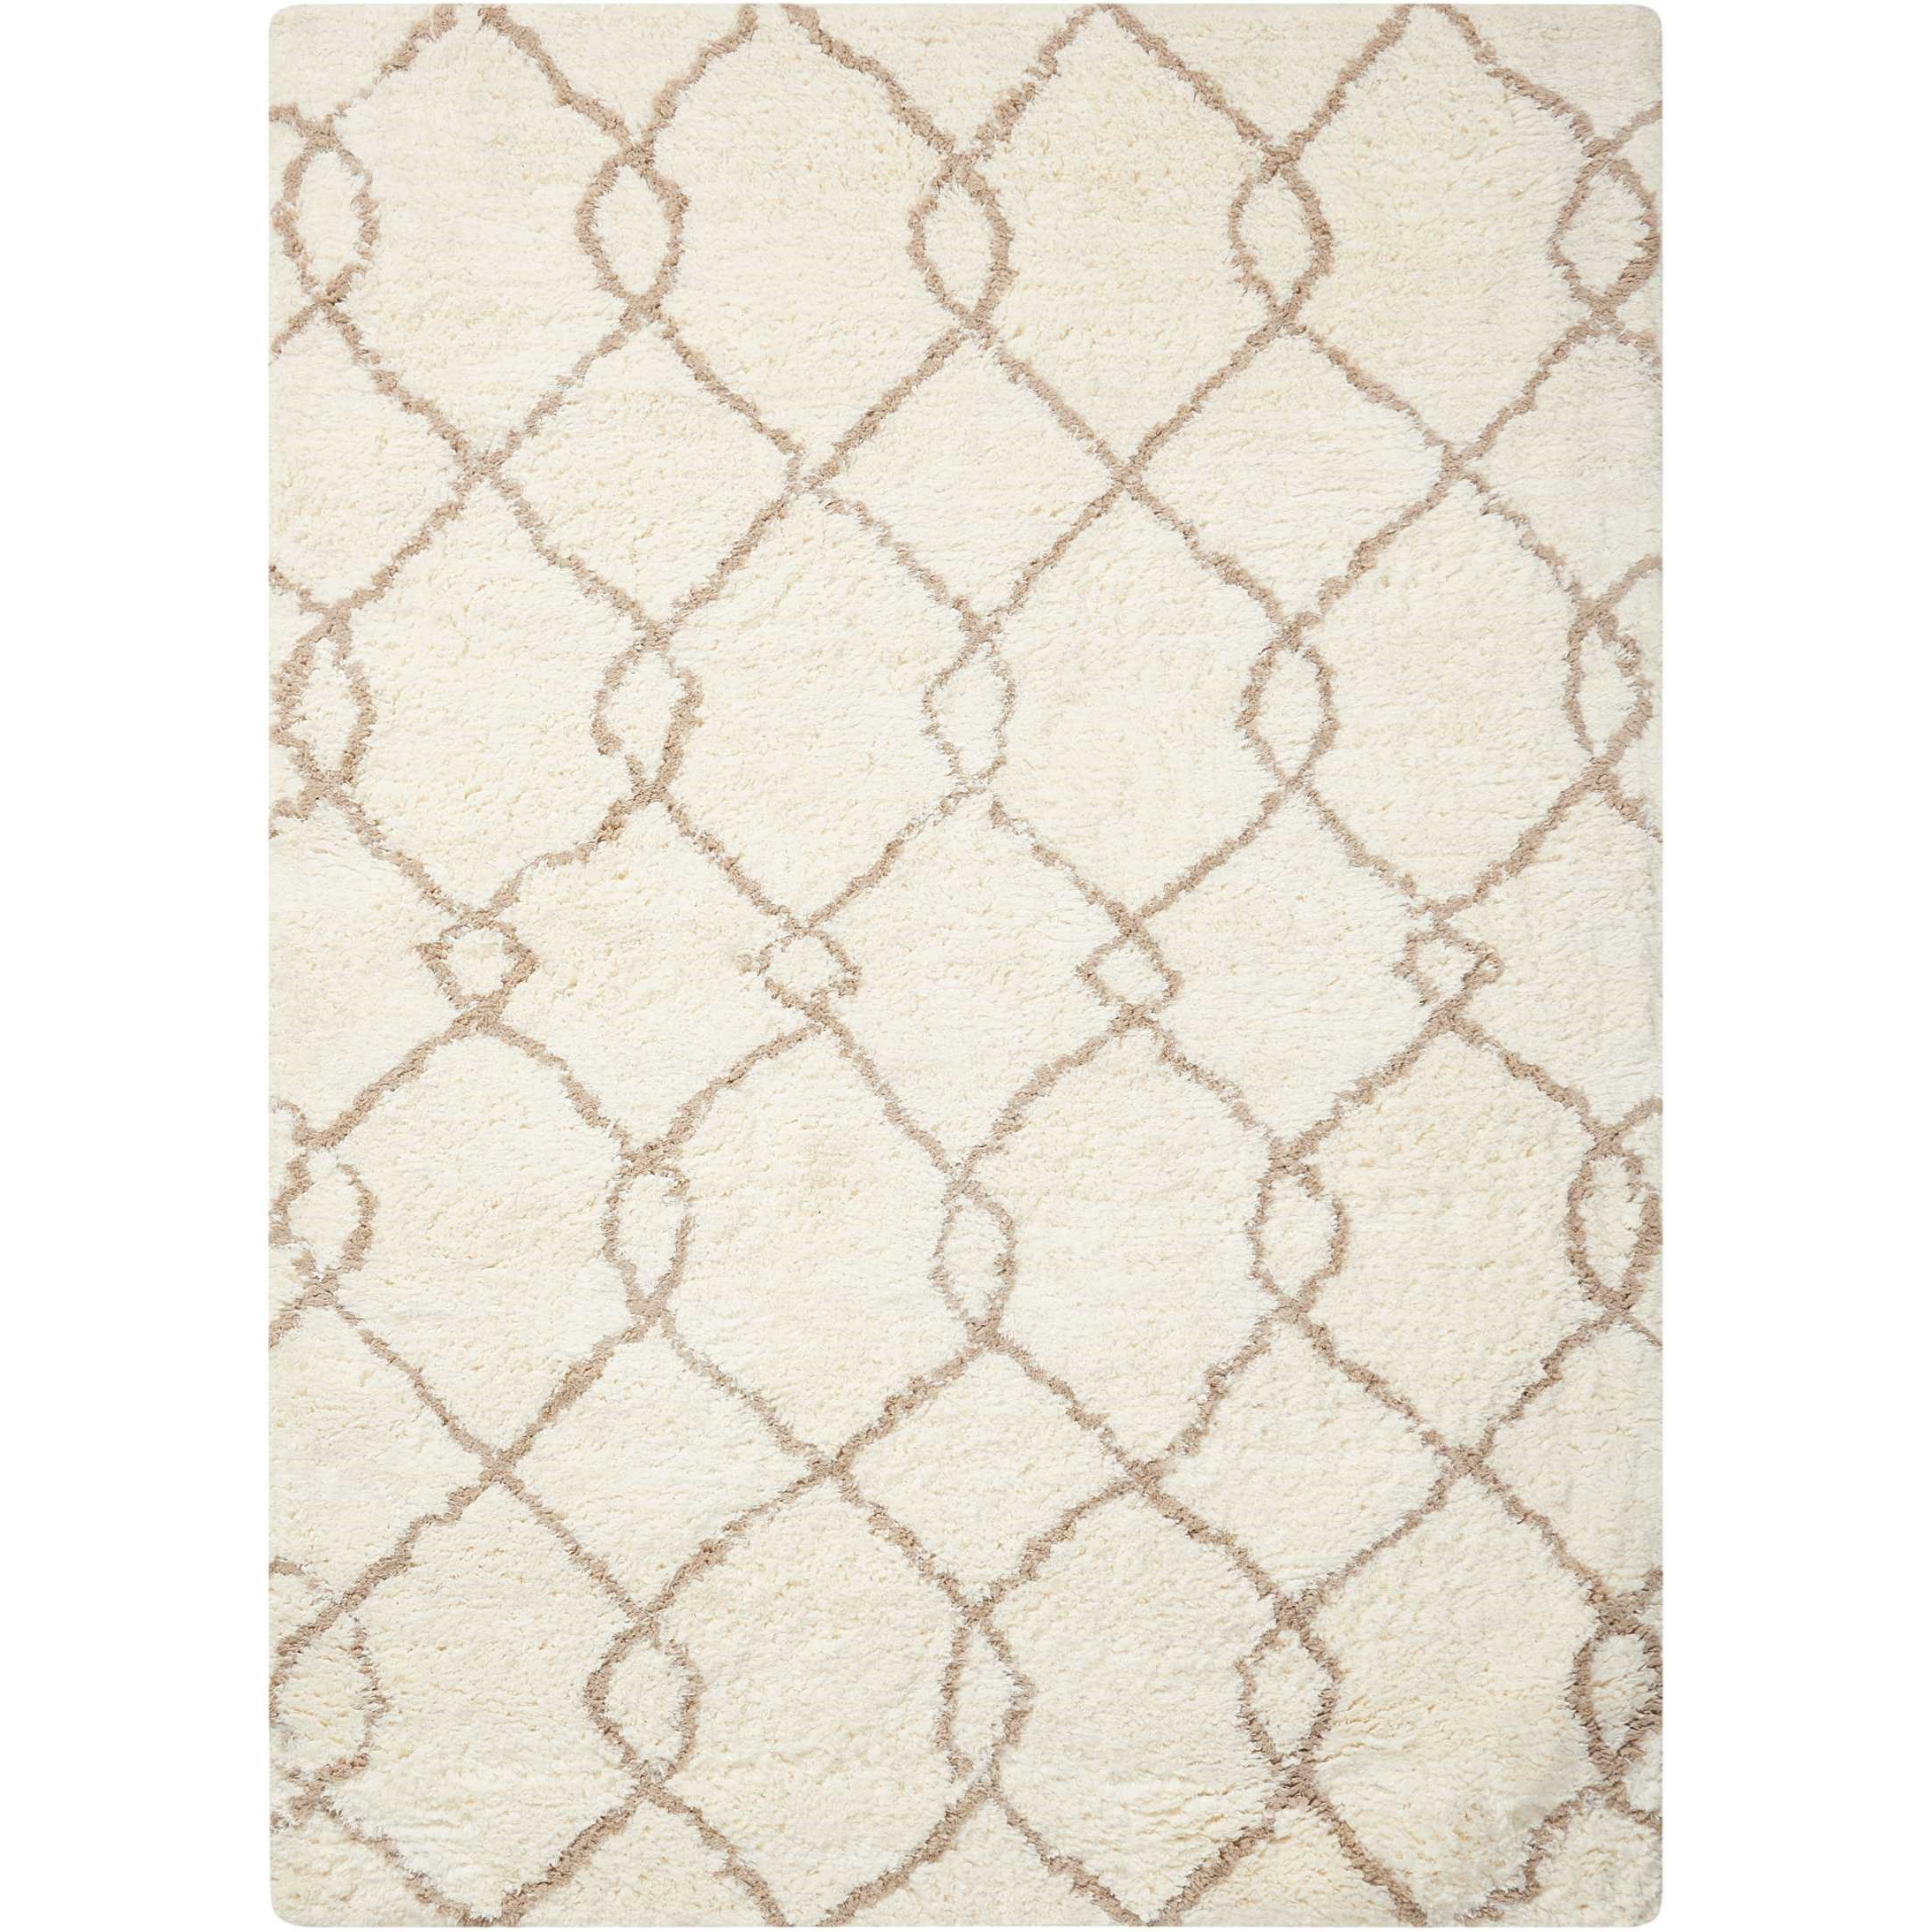 """Galway 7'6"""" x 9'6"""" Ivory/Tan Rectangle Rug by Nourison at Home Collections Furniture"""